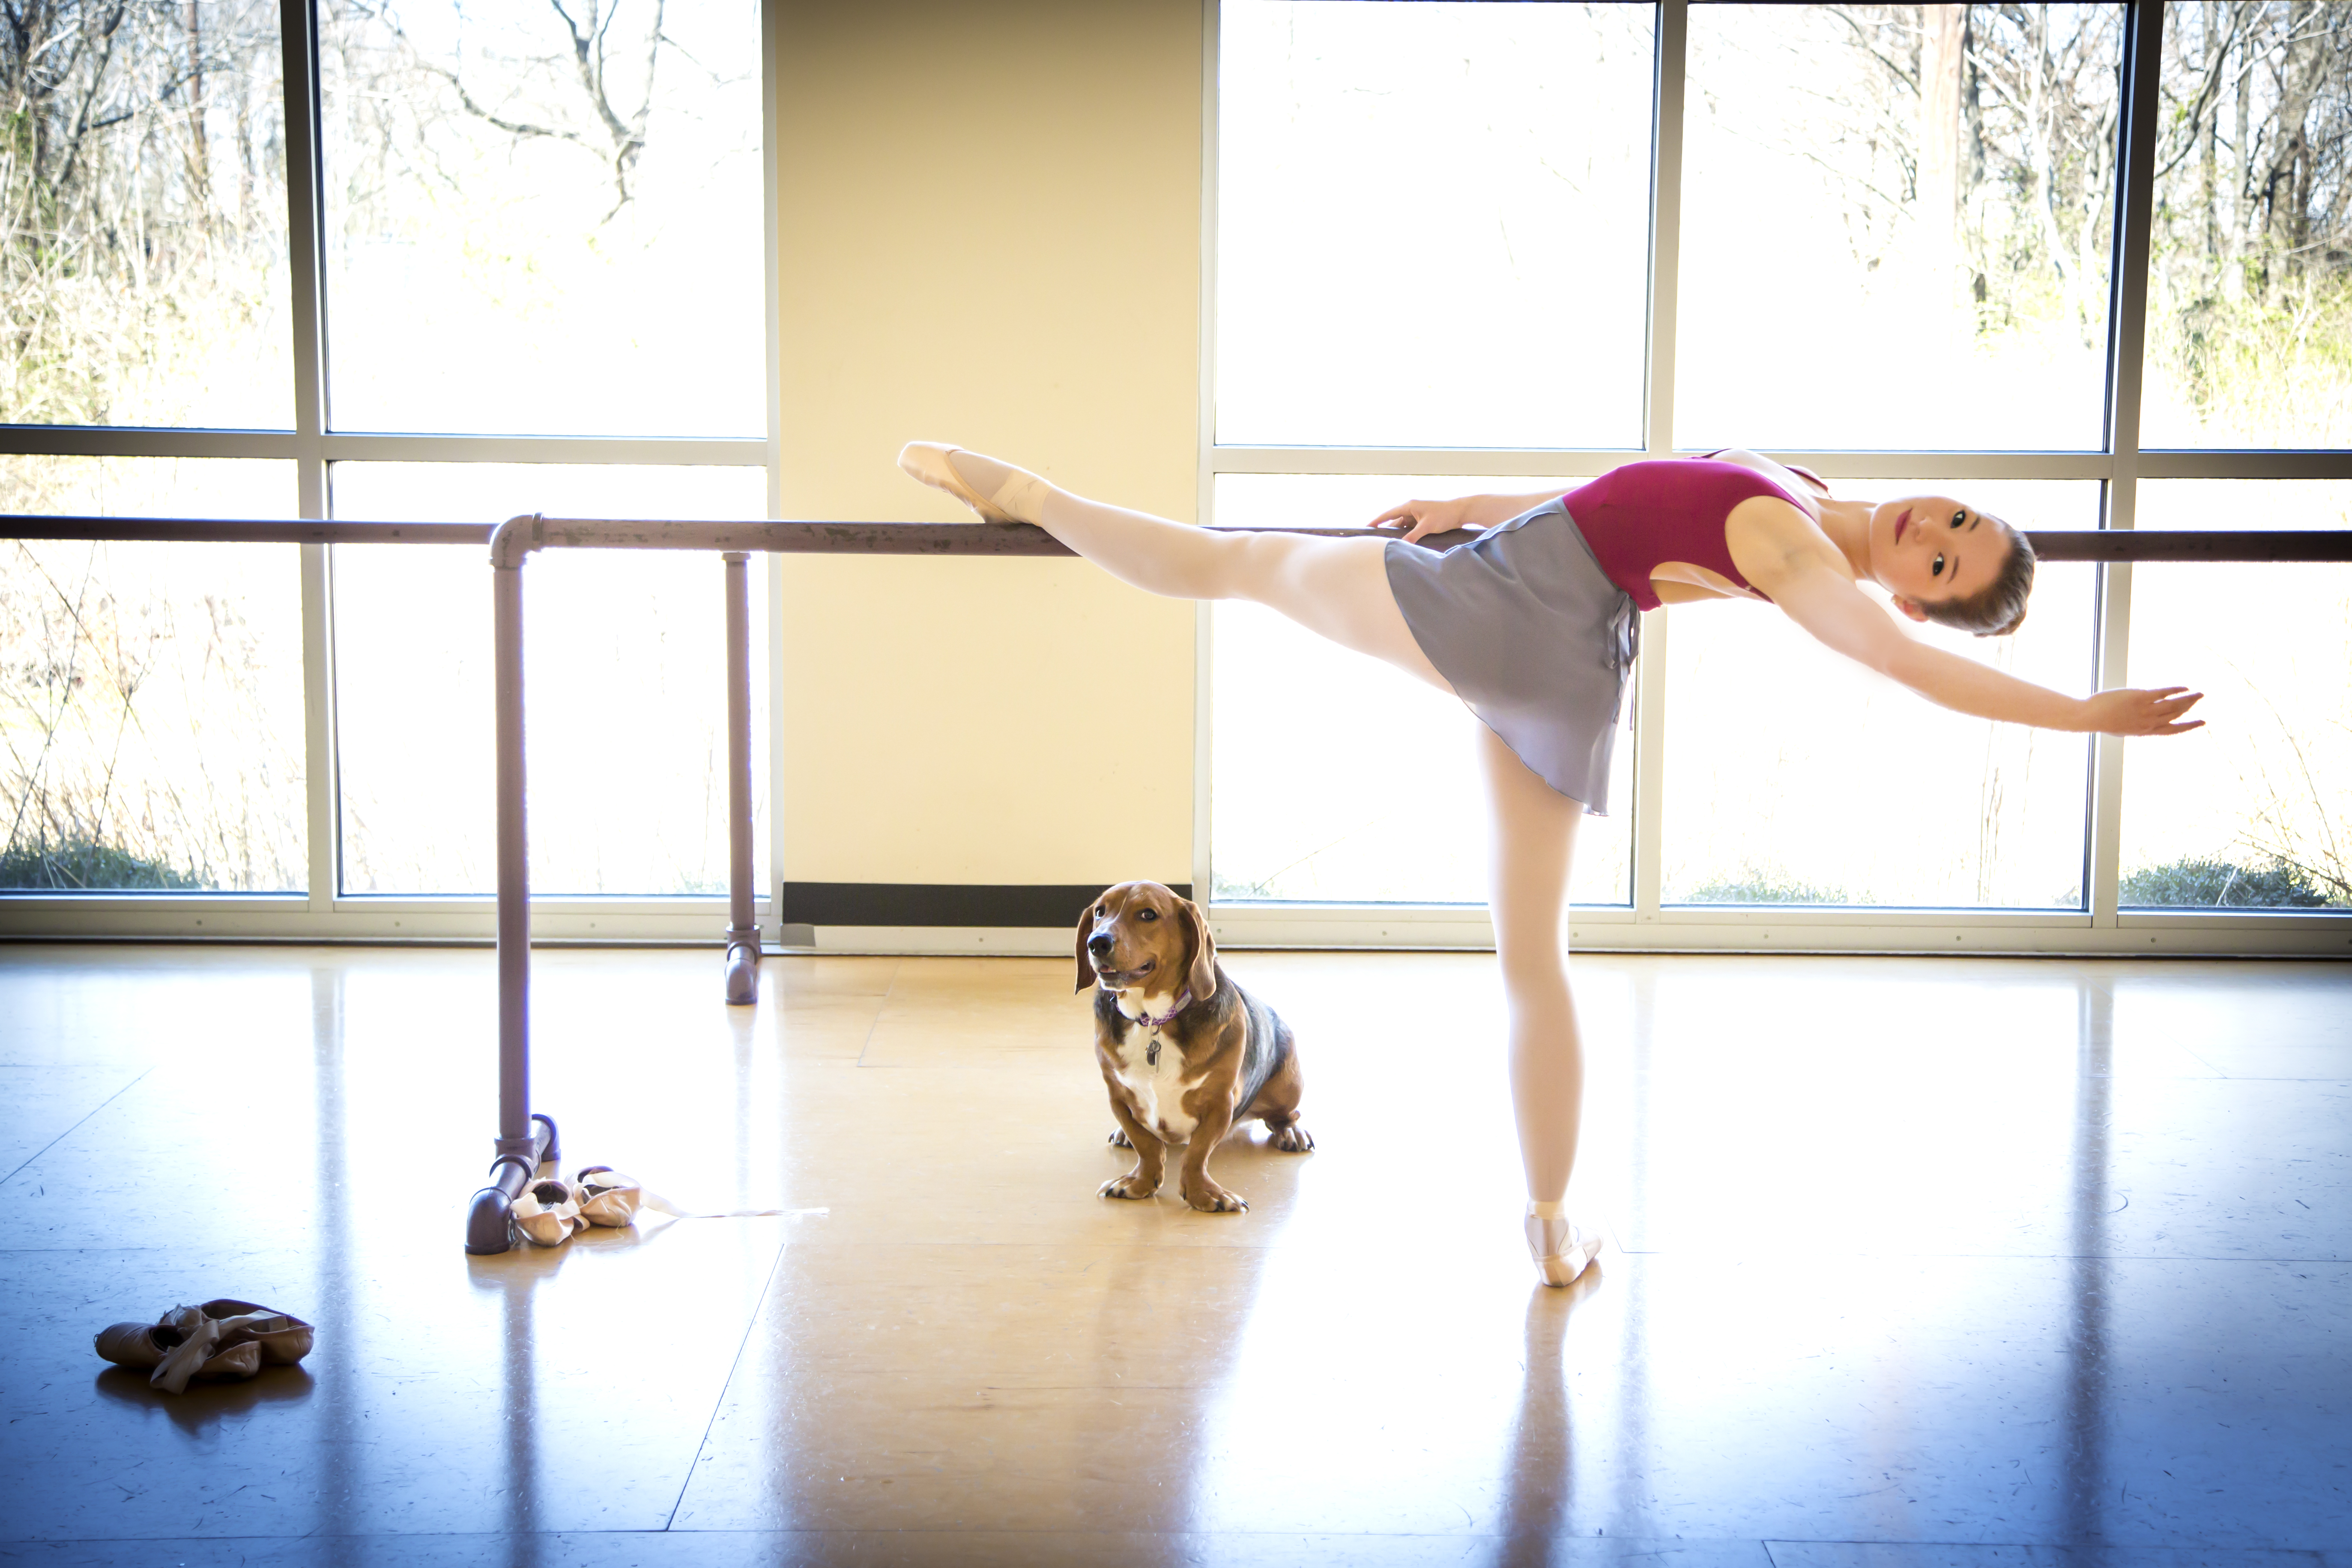 Trussville photographer releases book combining rescue dogs, ballet